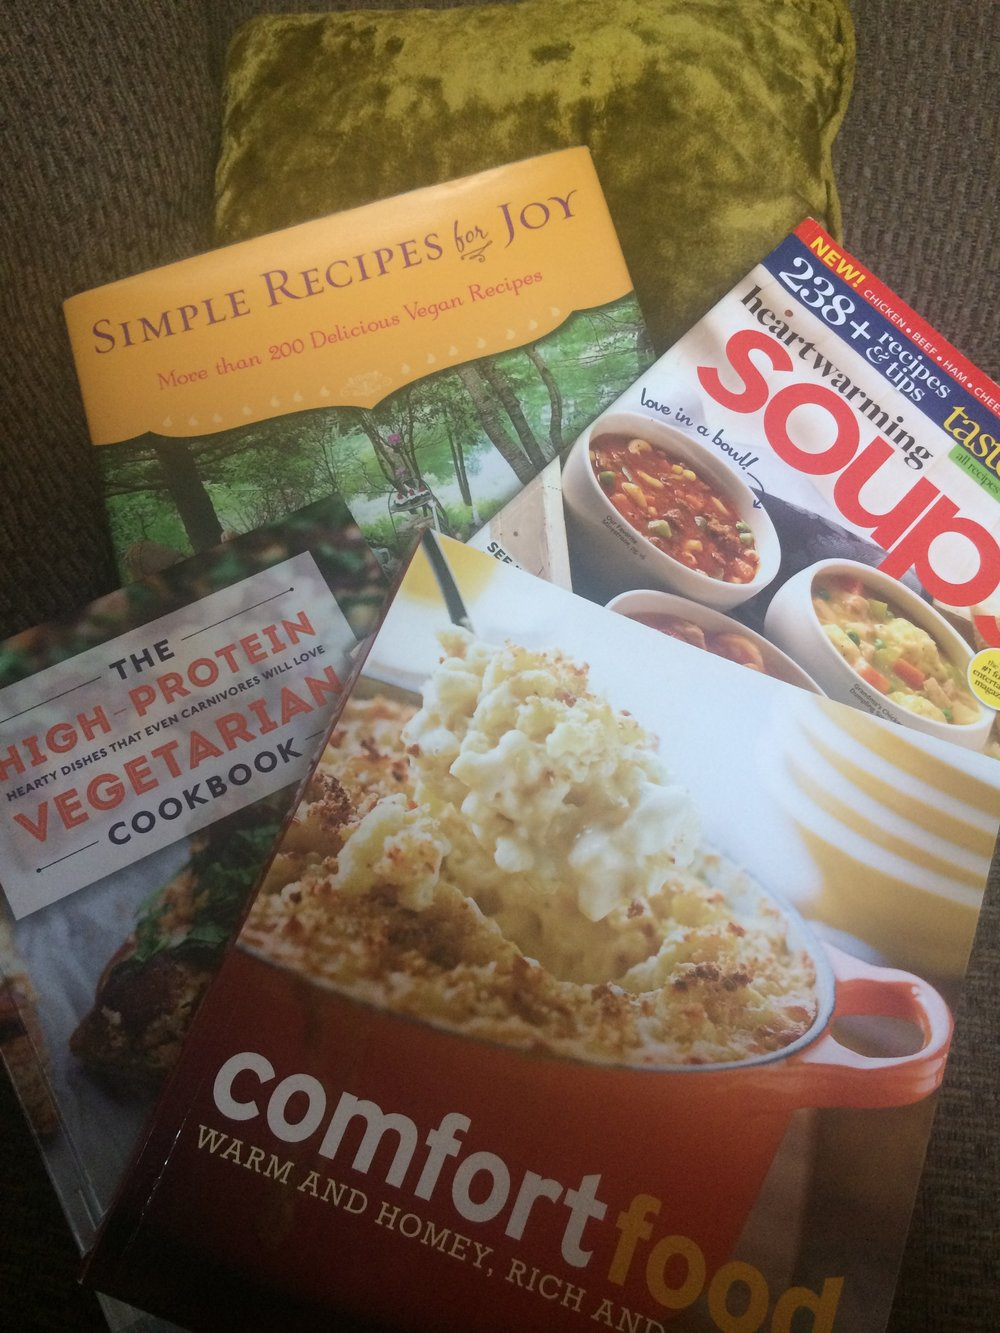 A smattering of the cookbooks I own or borrowed from the library.